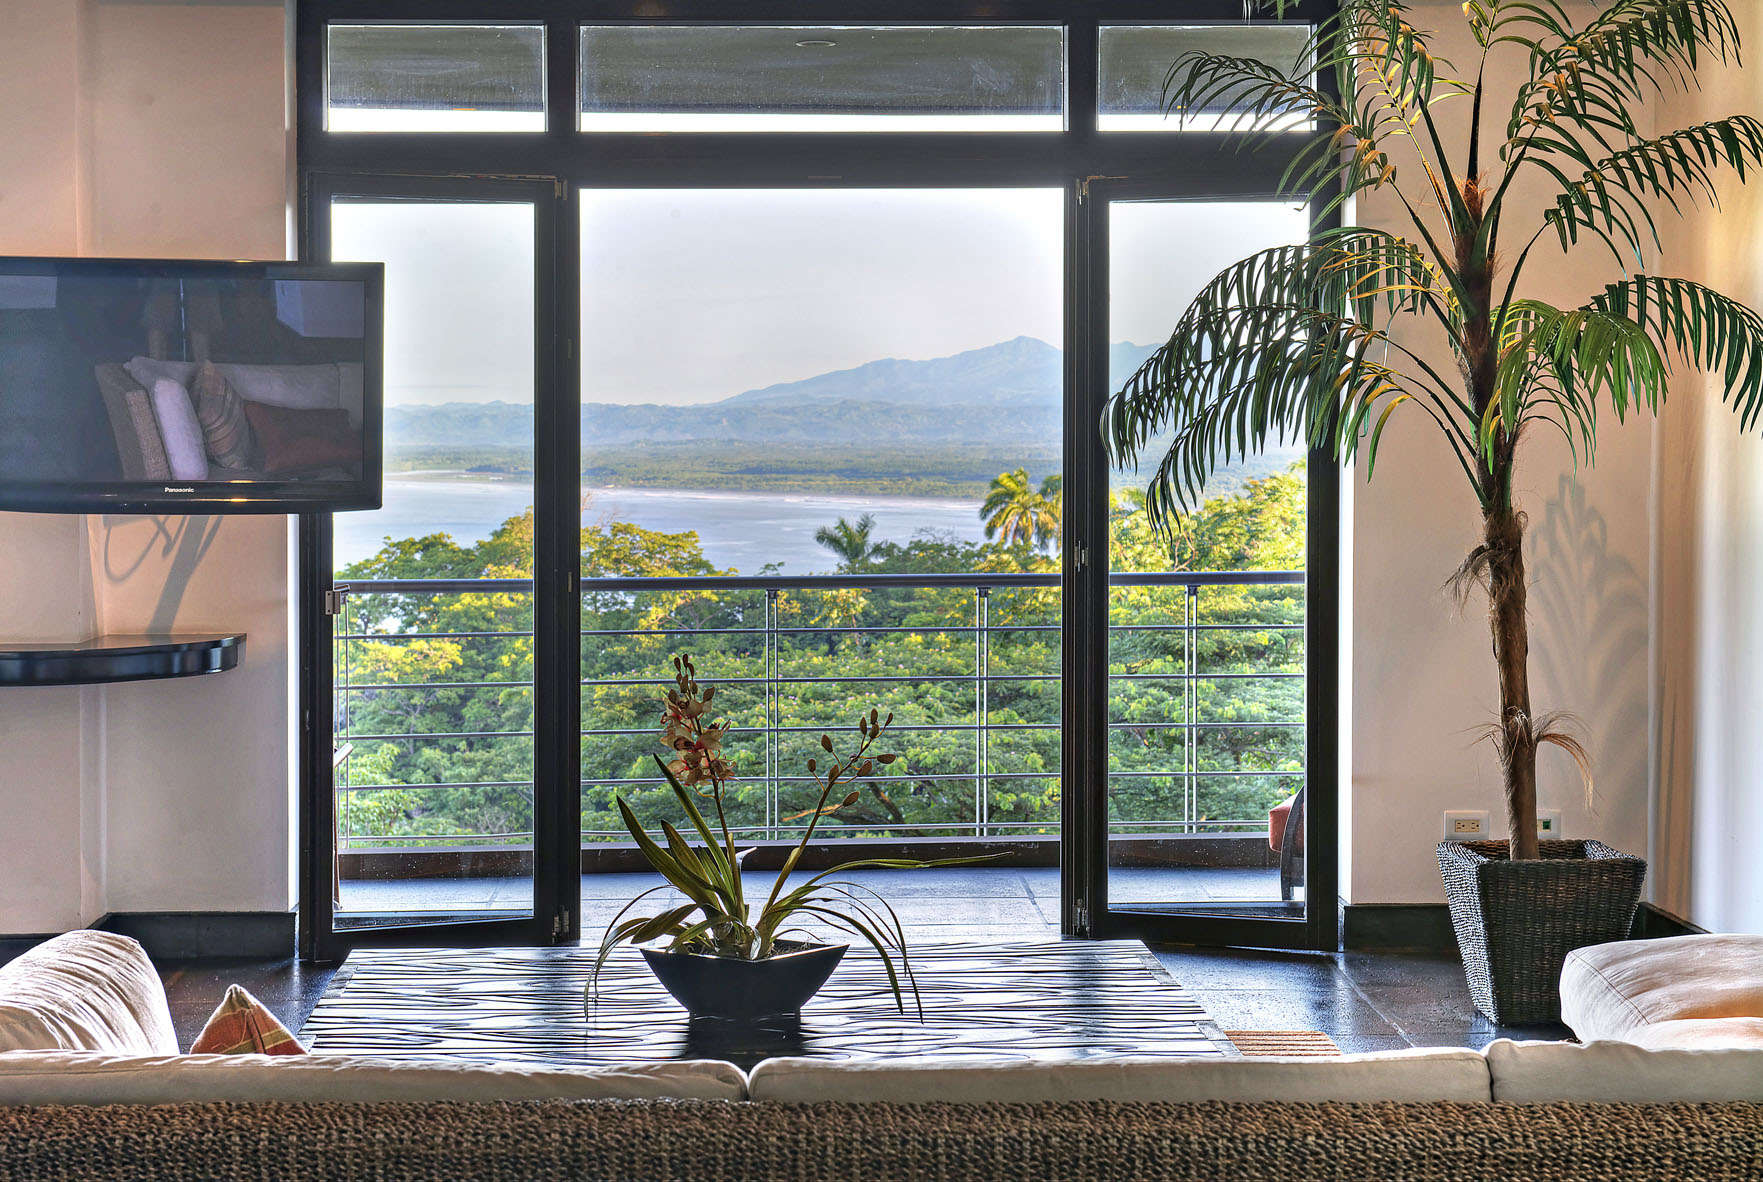 Central america villa rentals - Costa rica - Puntarenas - Los altosresort - Treetop and Ocean & Jungle View Suites - Image 1/12